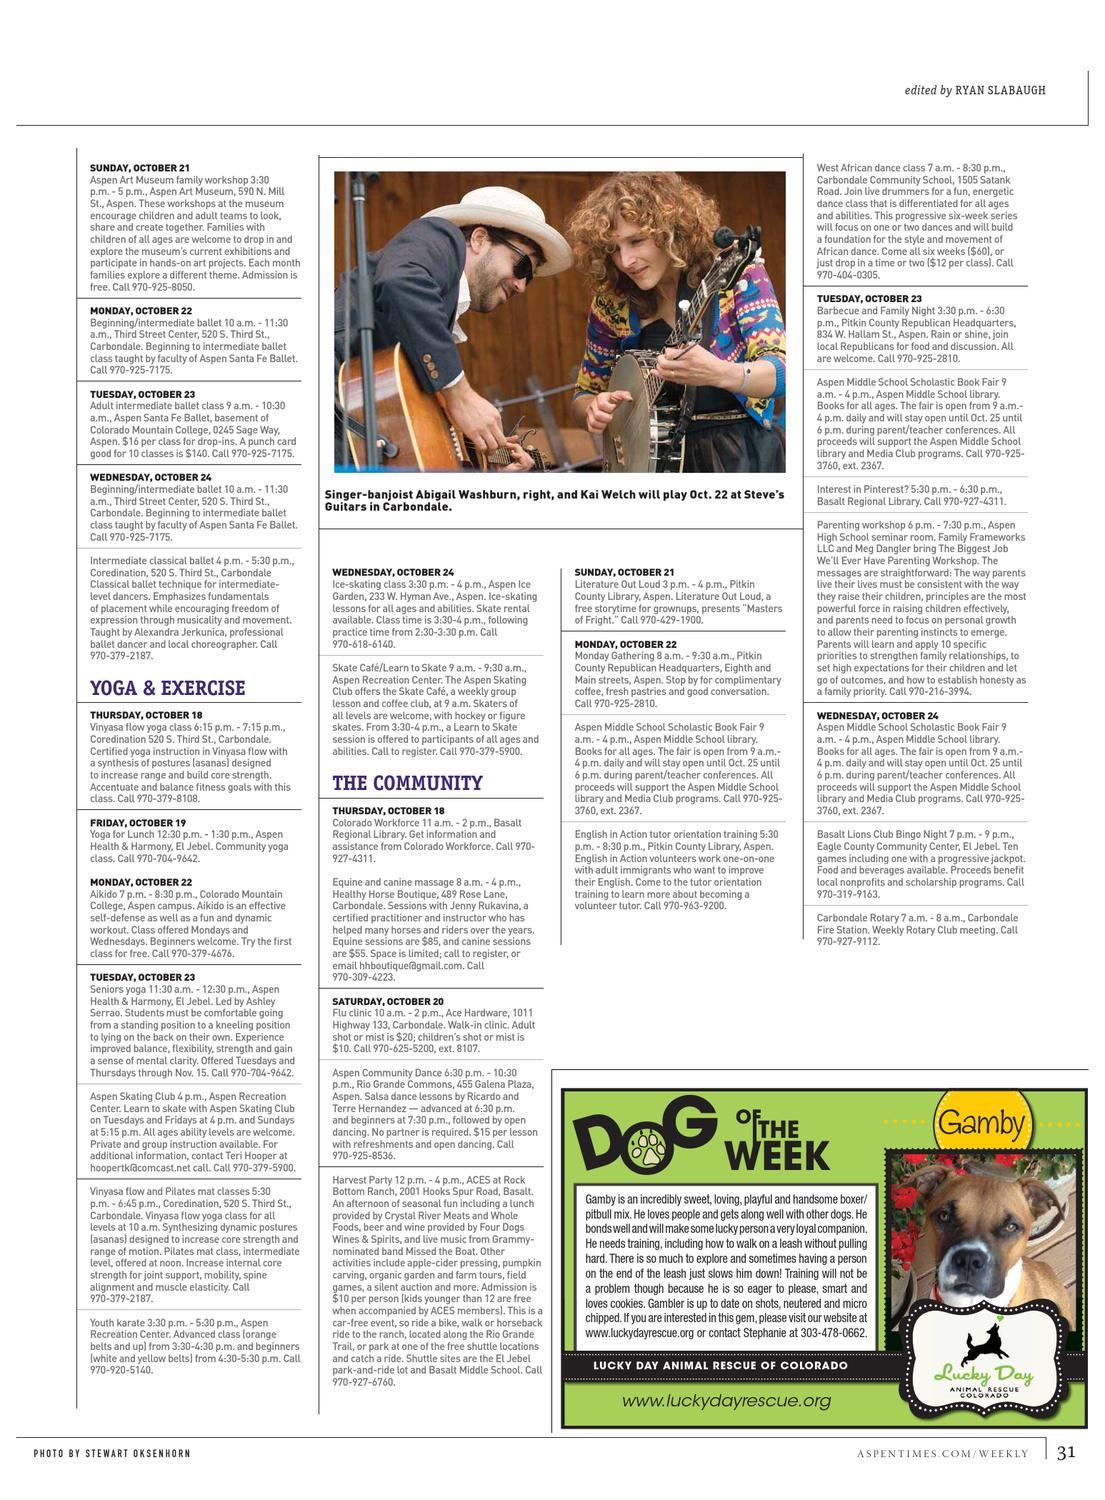 Aspen Times Weekly: Oct  18 edition by Aspen Times Weekly - issuu